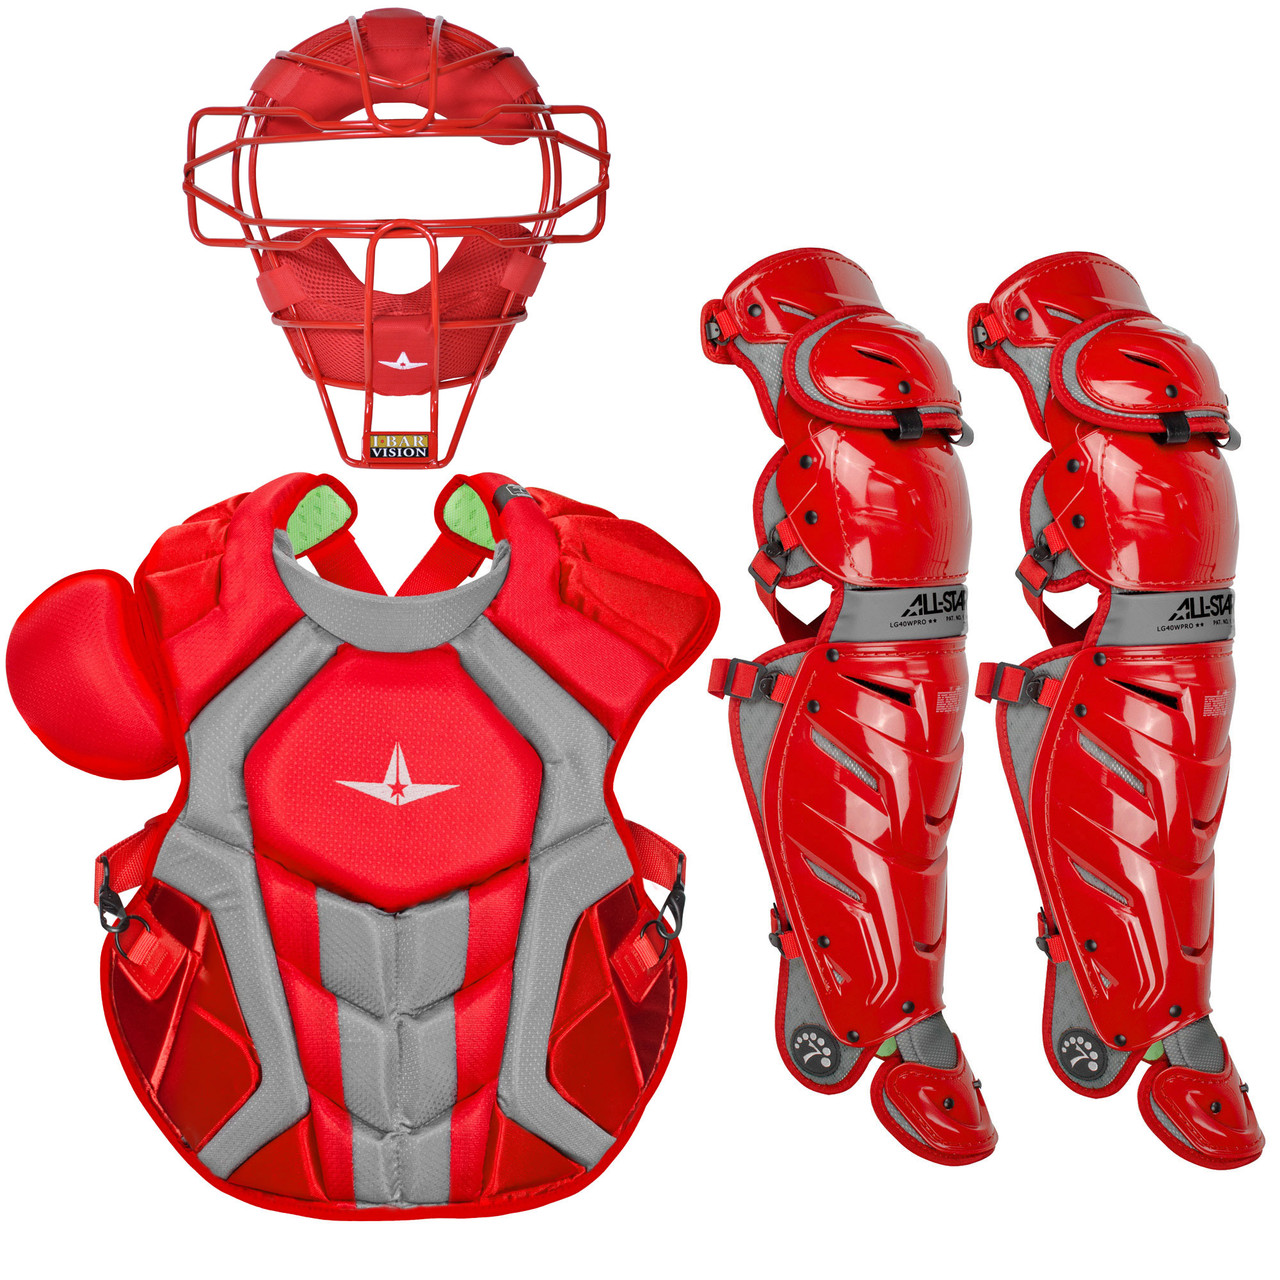 All-Star System7 Axis TM Adult NOCSAE Baseball Catcher's Package